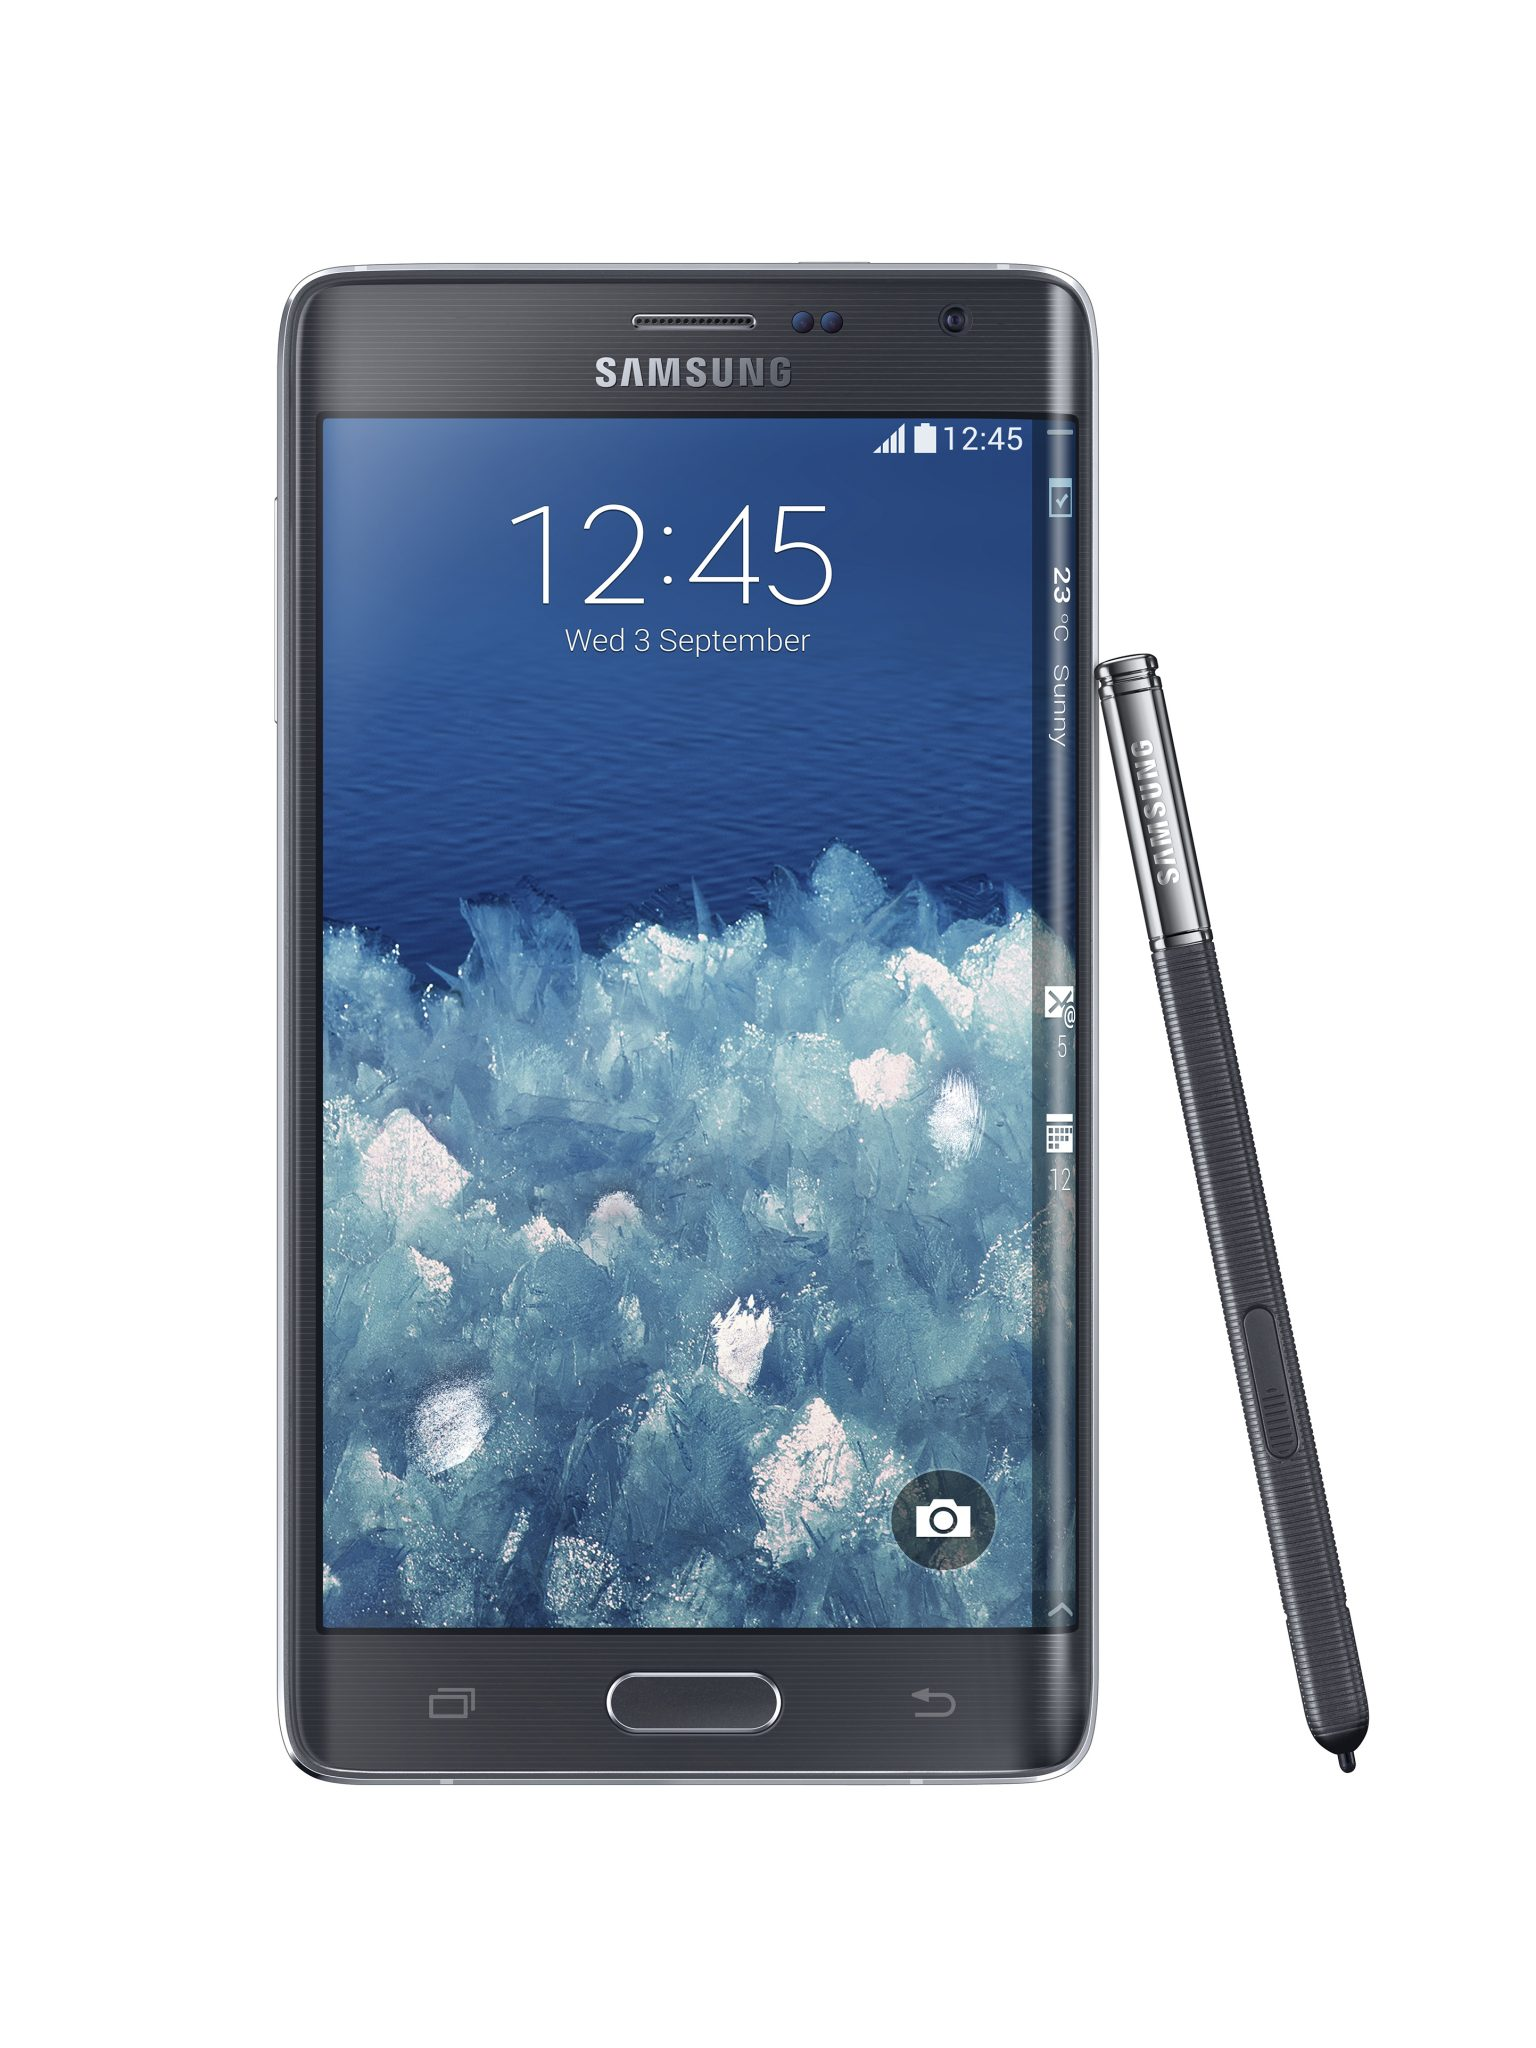 GalaxyNoteEdge AndroDollar 4 - Samsung Unveils the Galaxy Note Edge with a Curved Display; Here's Everything you need to know